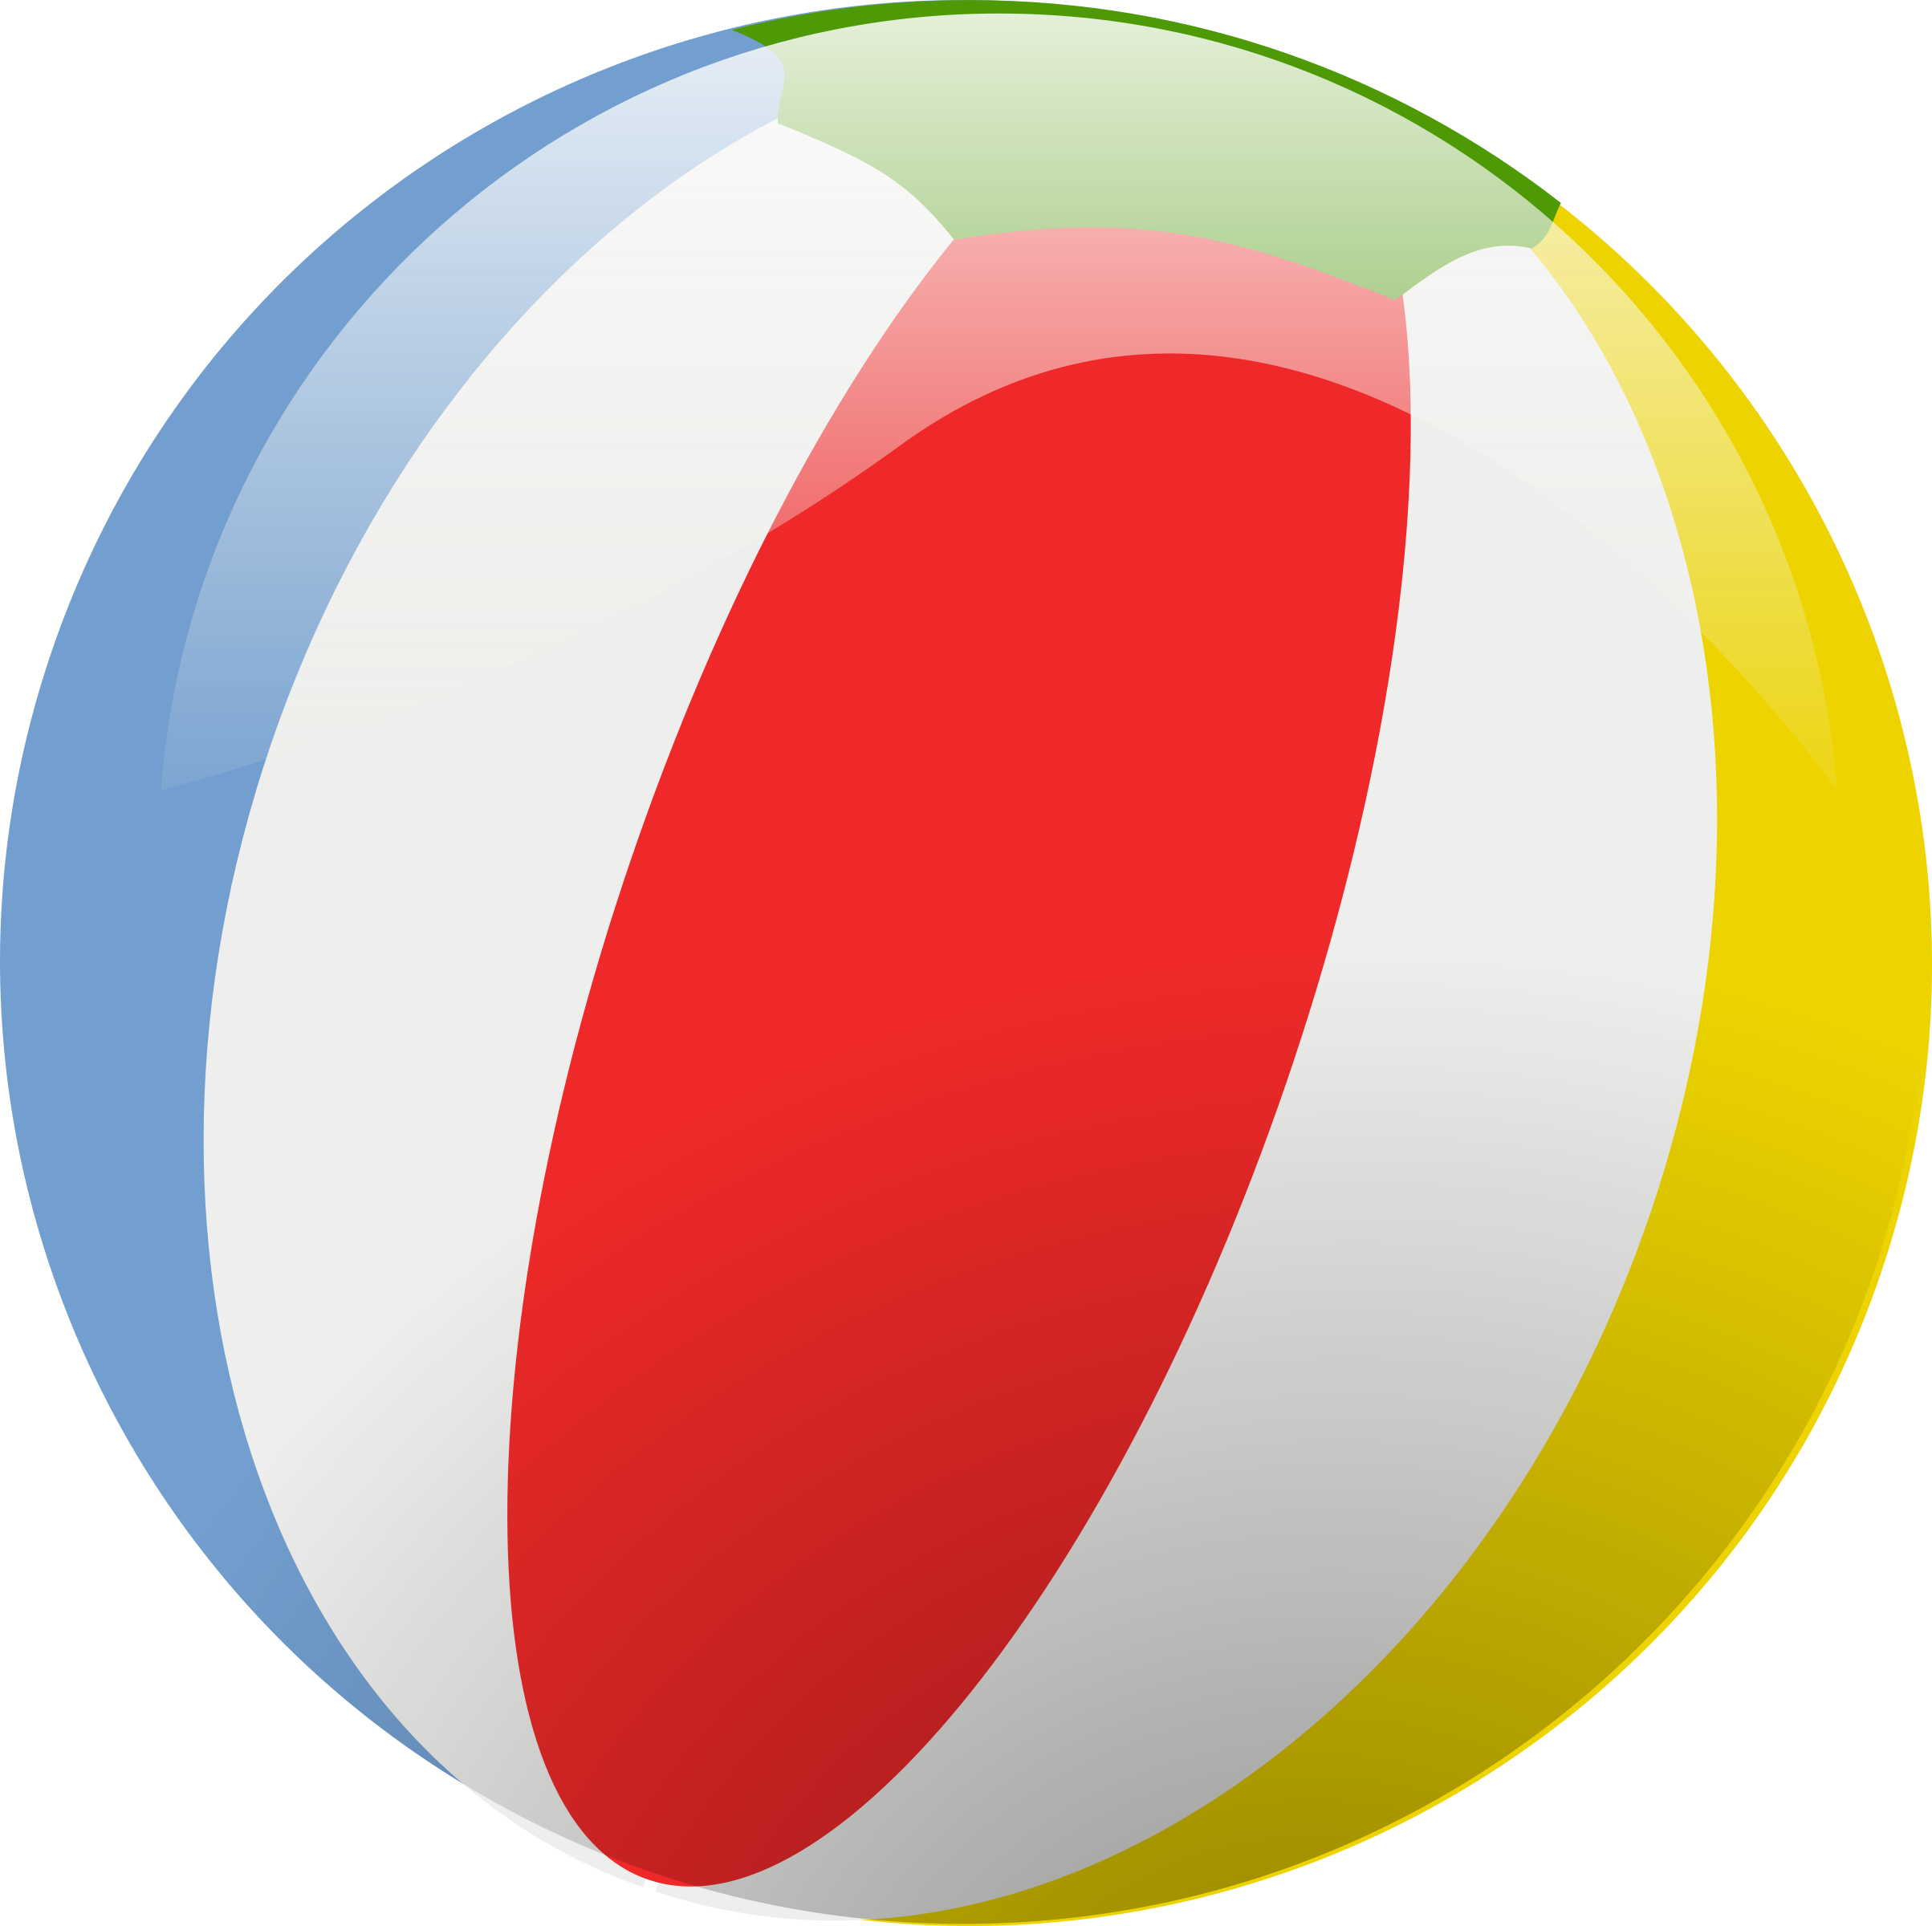 Beach Ball Free Png Image PNG Image